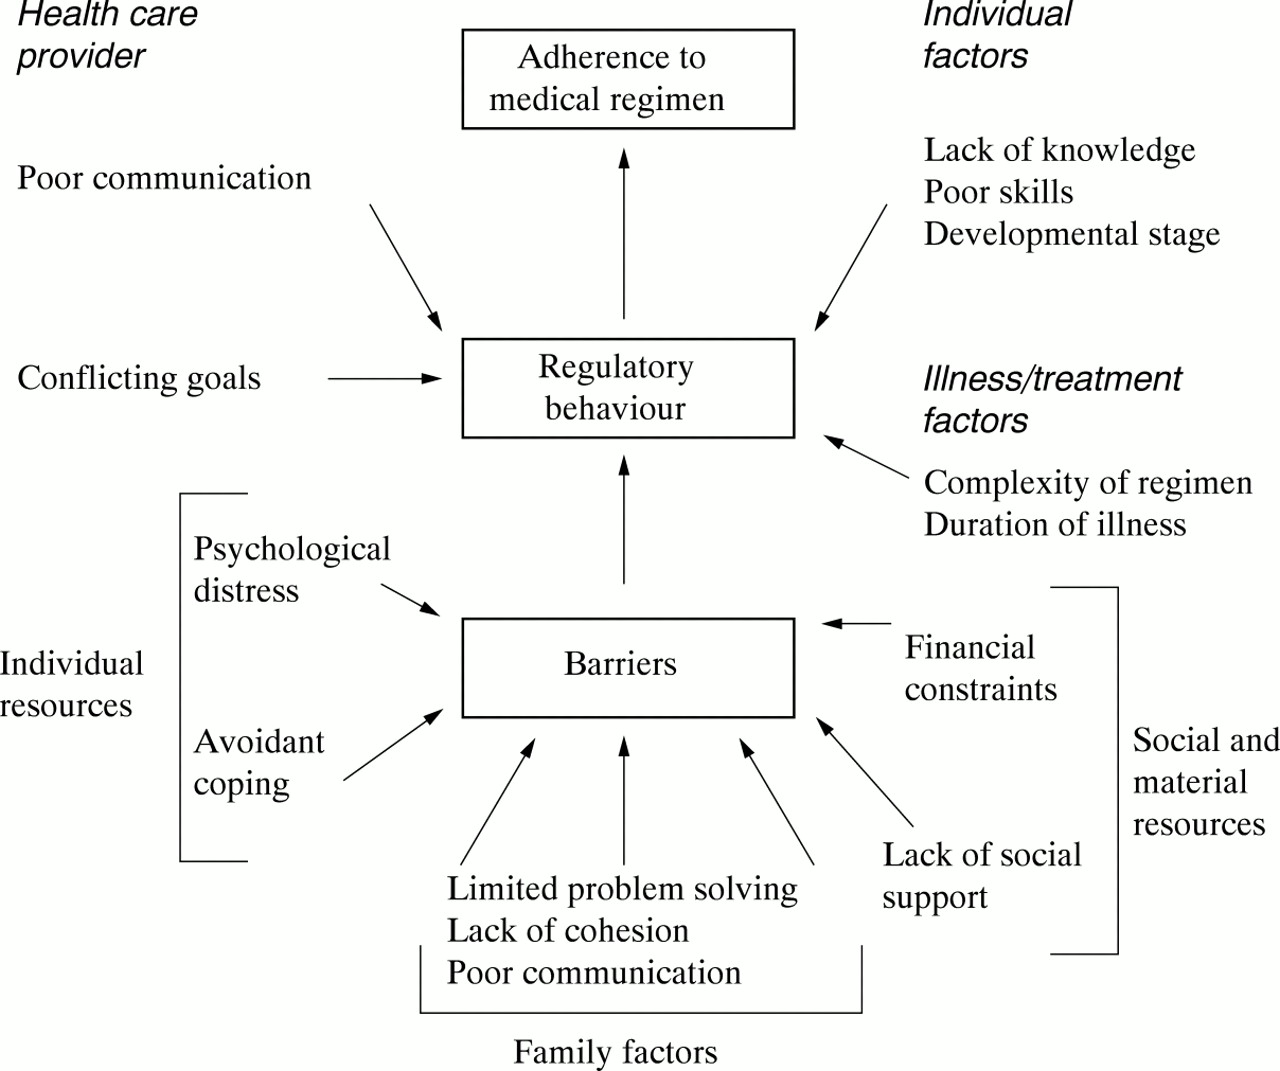 Compliance With Treatment Protocols Interventions For